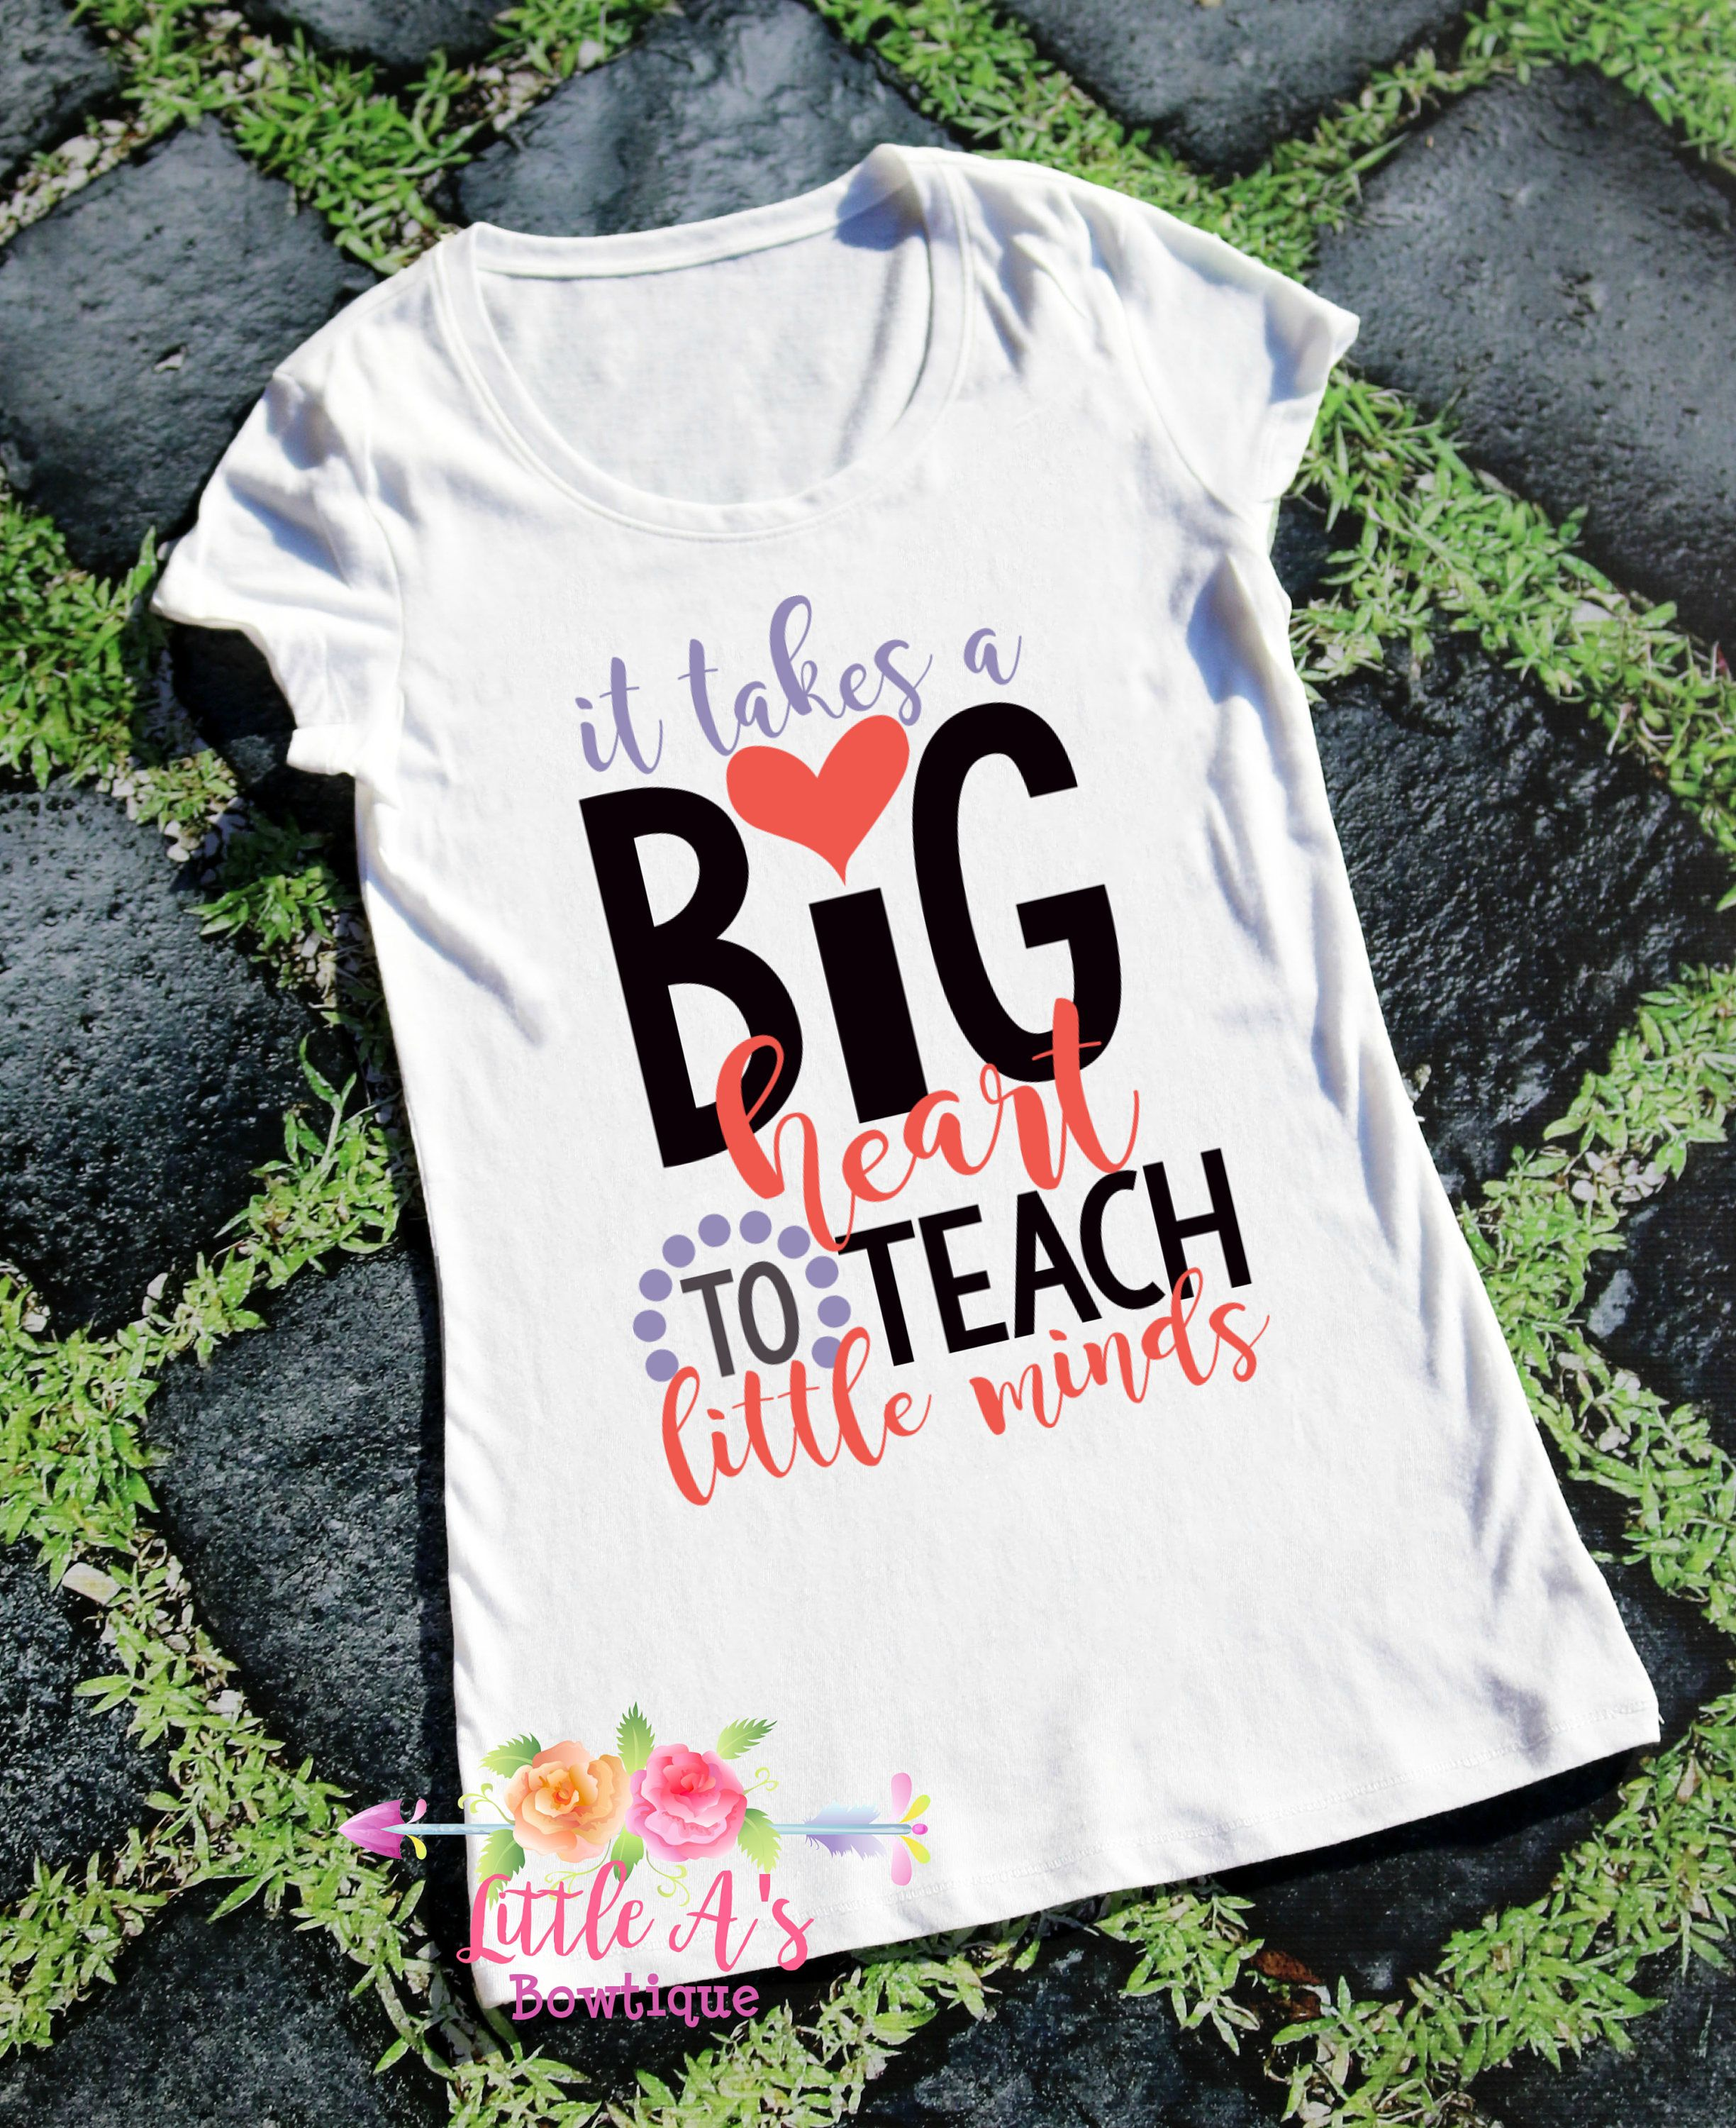 Big W School Shirts It Takes A Big Heart To Teach Little Minds Teacher Teacher Gift